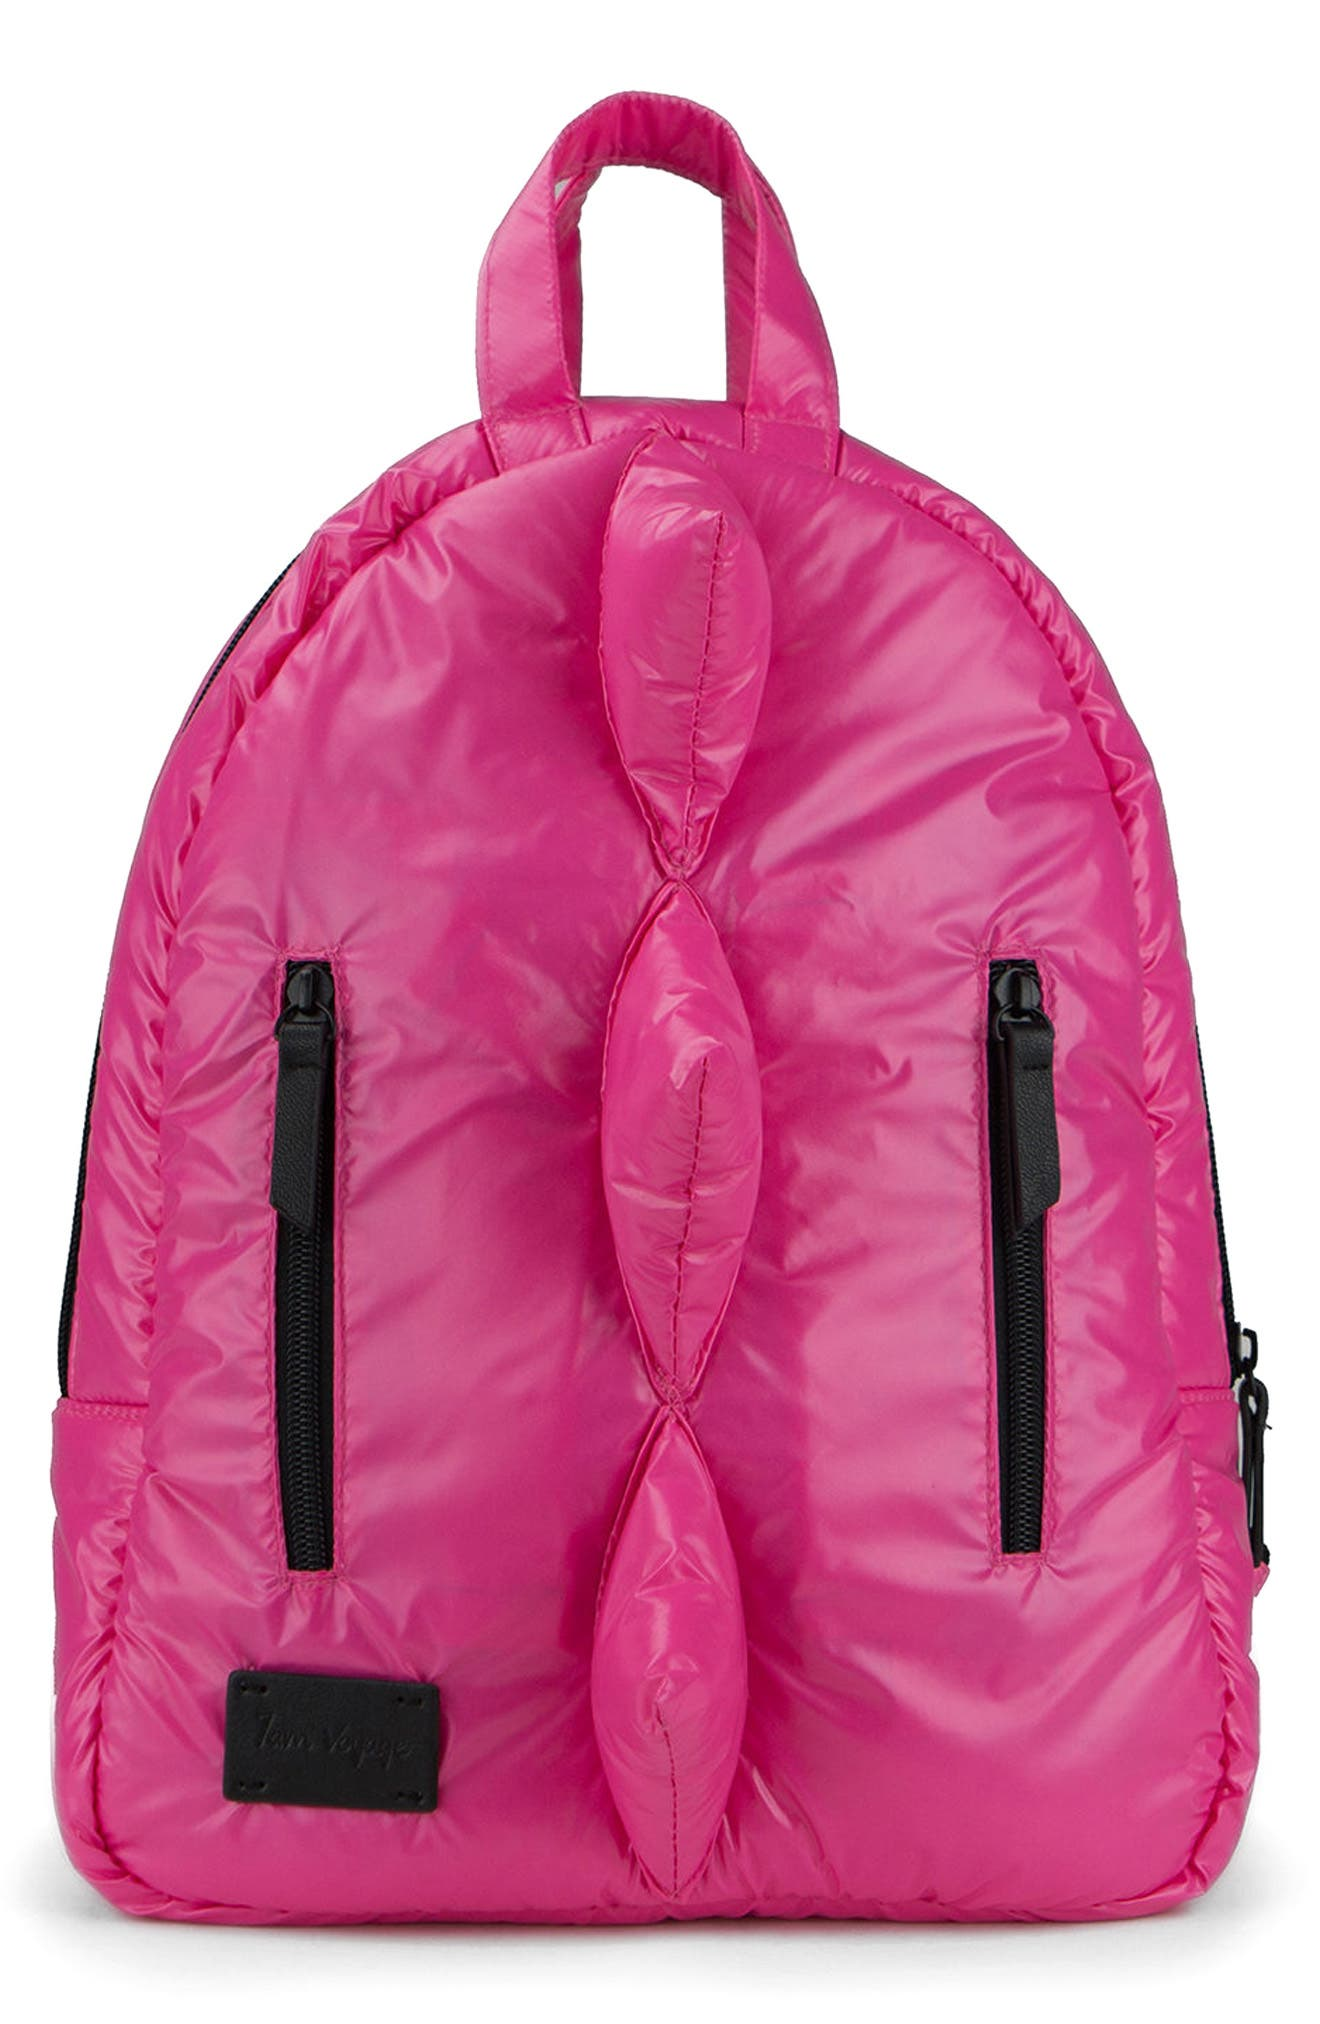 7 A.M. Enfant Dino Water Repellent Mini Backpack (Kids)